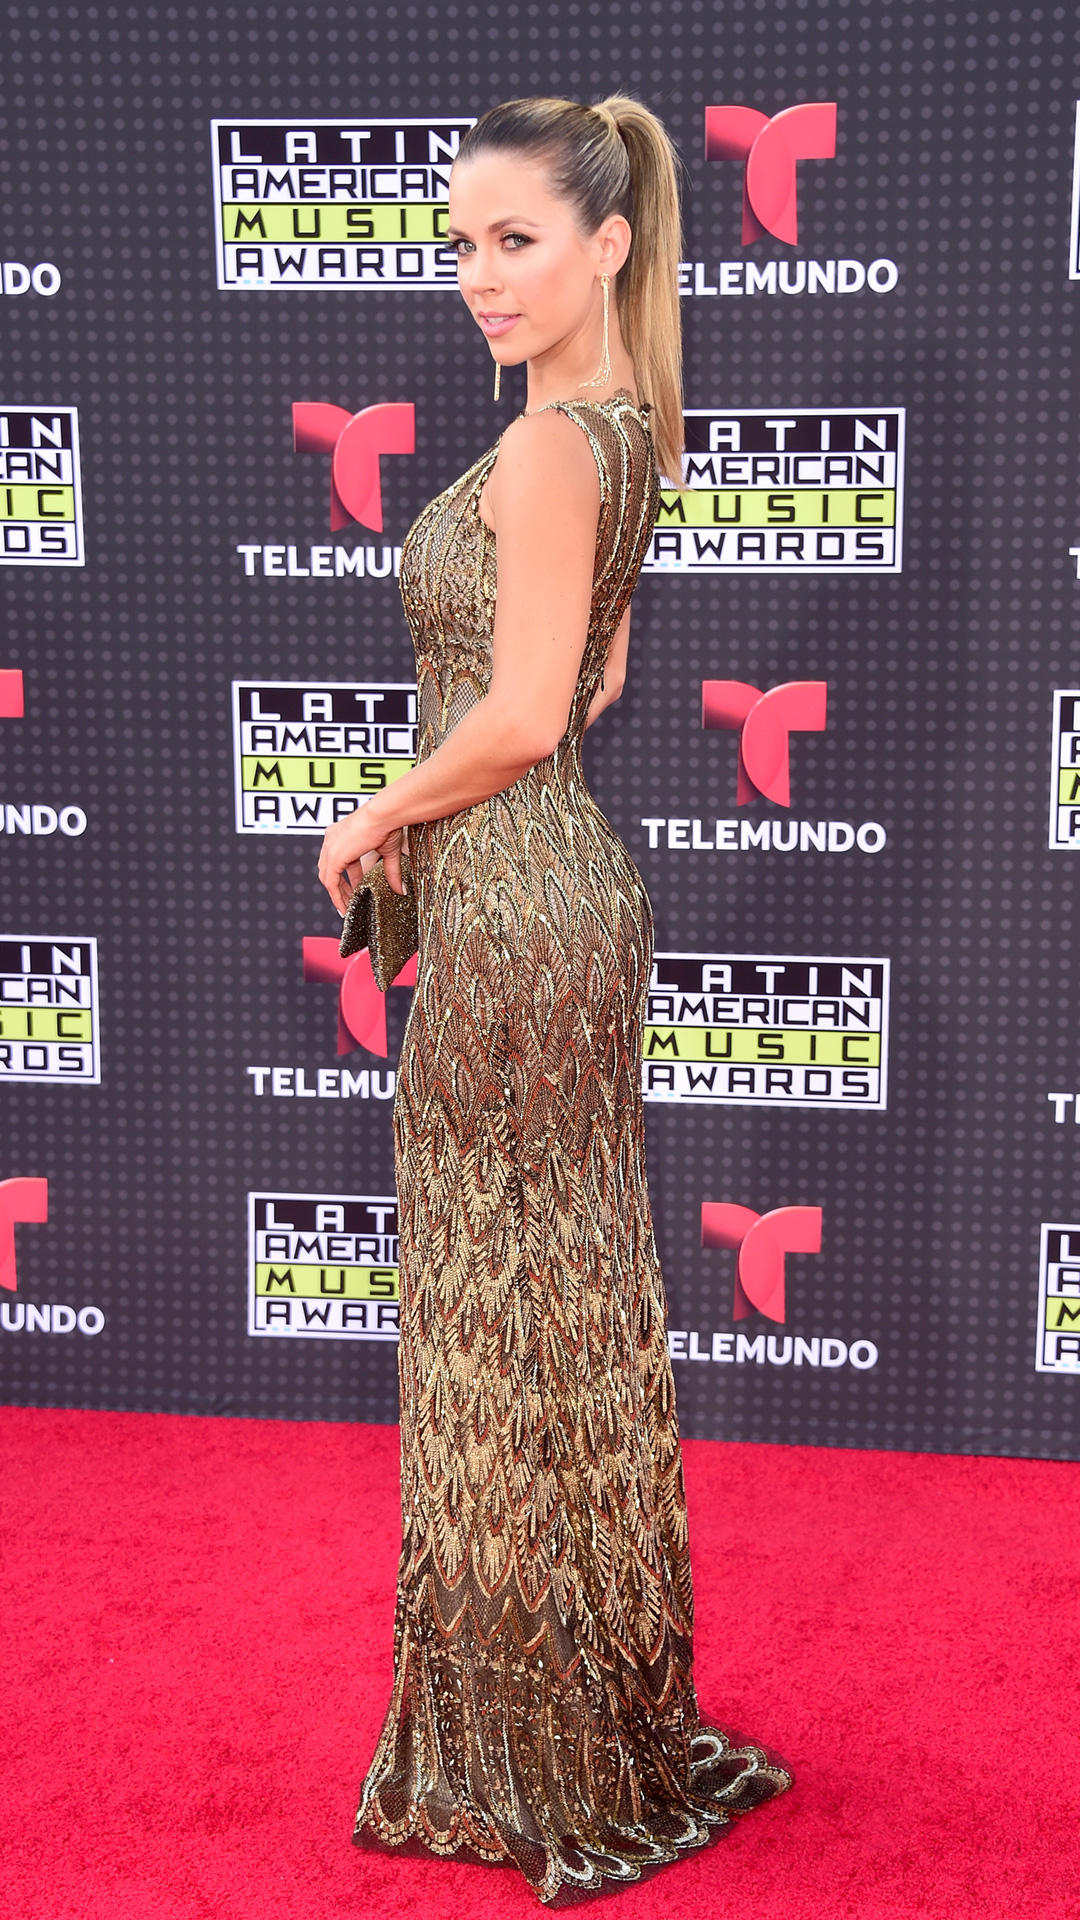 HOLLYWOOD, CA - OCTOBER 08:  Actress Ximena Duque attends Telemundo's Latin American Music Awards at the Dolby Theatre on October 8, 2015 in Hollywood, California.  (Photo by Frazer Harrison/Getty Images)